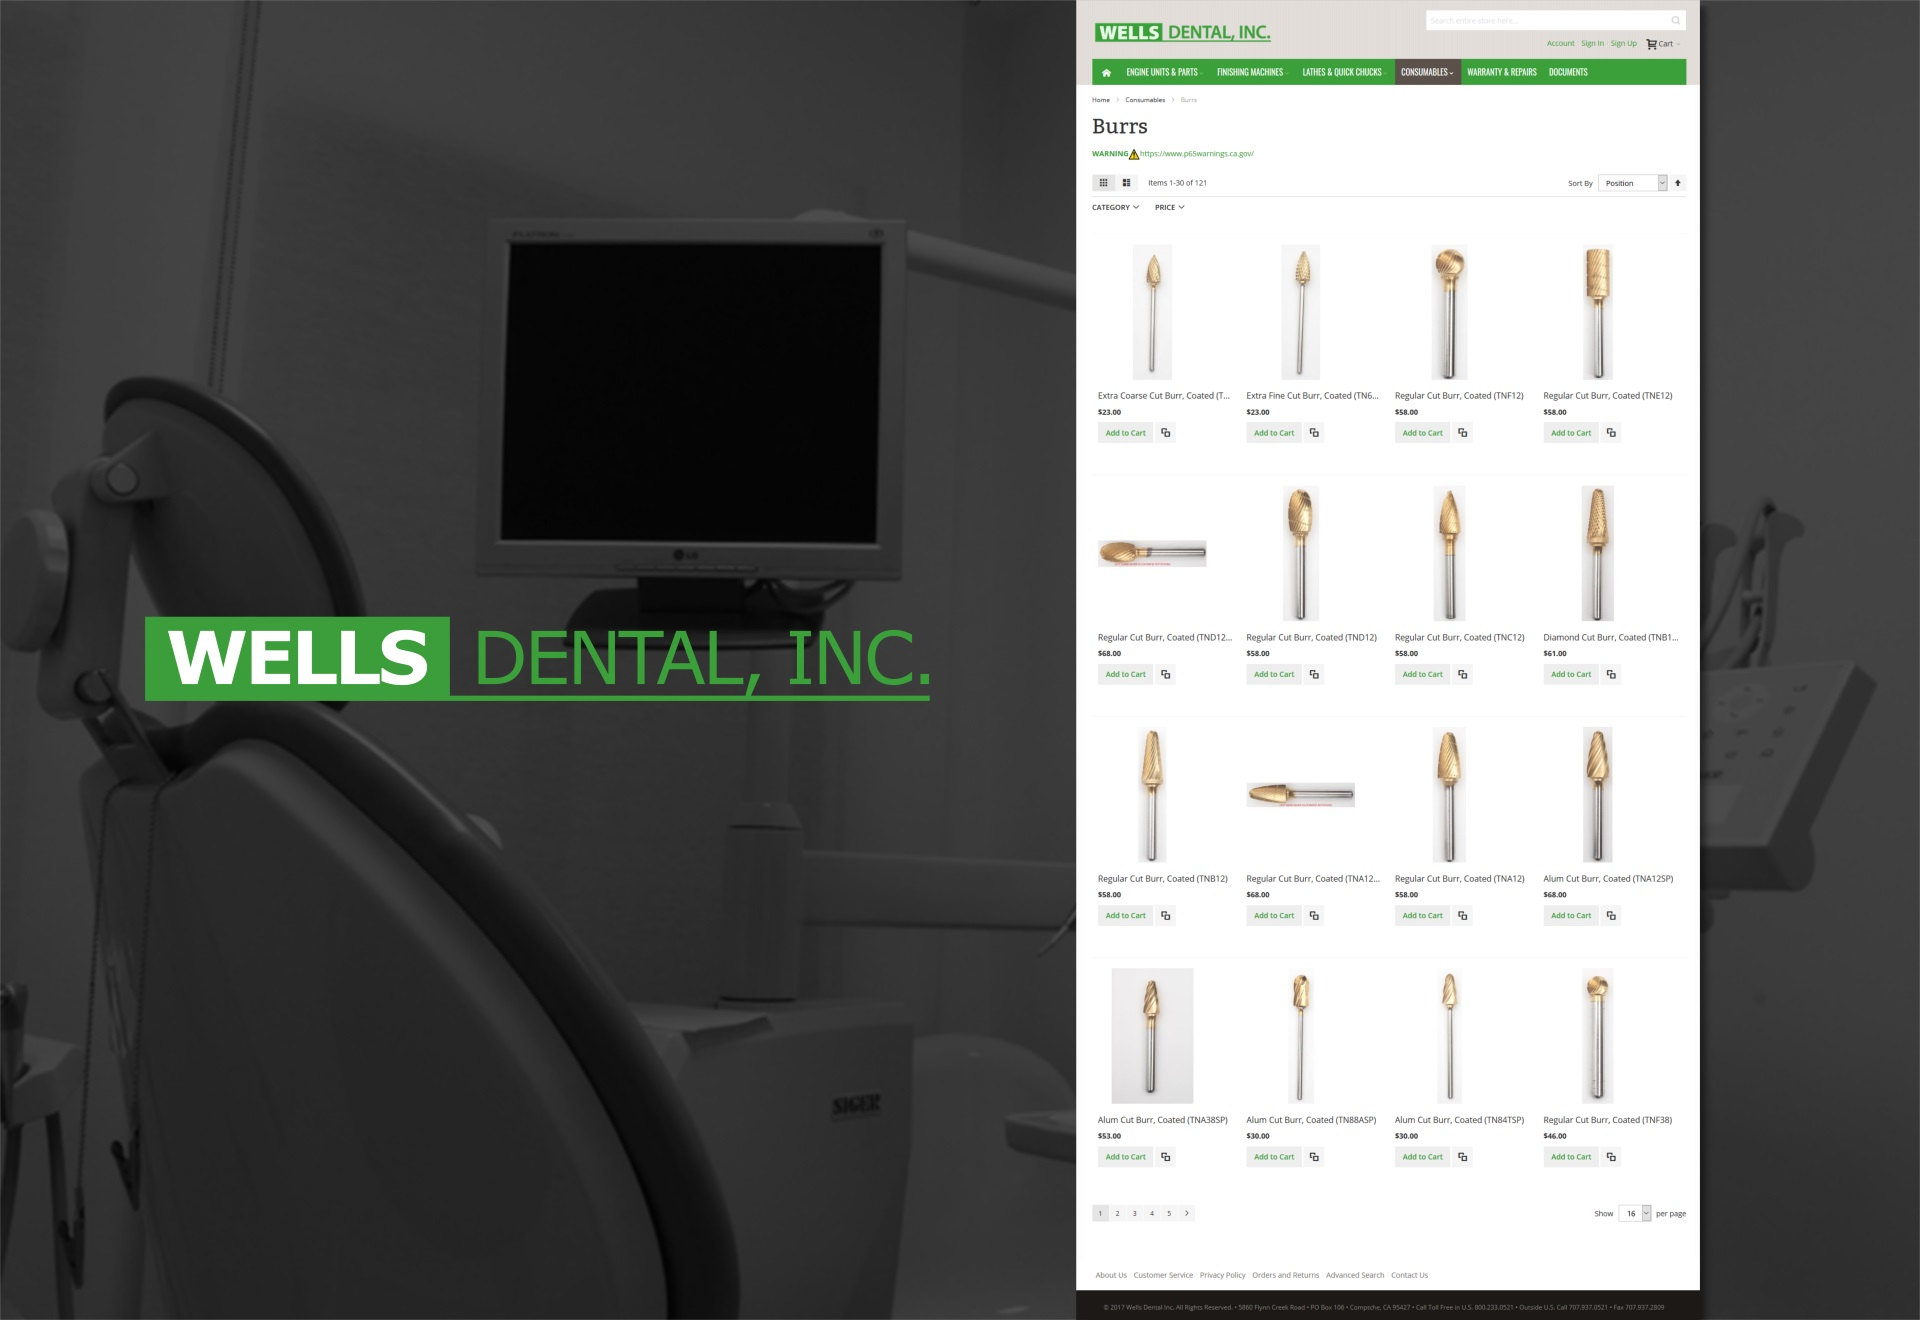 Wells Dental Supplies.